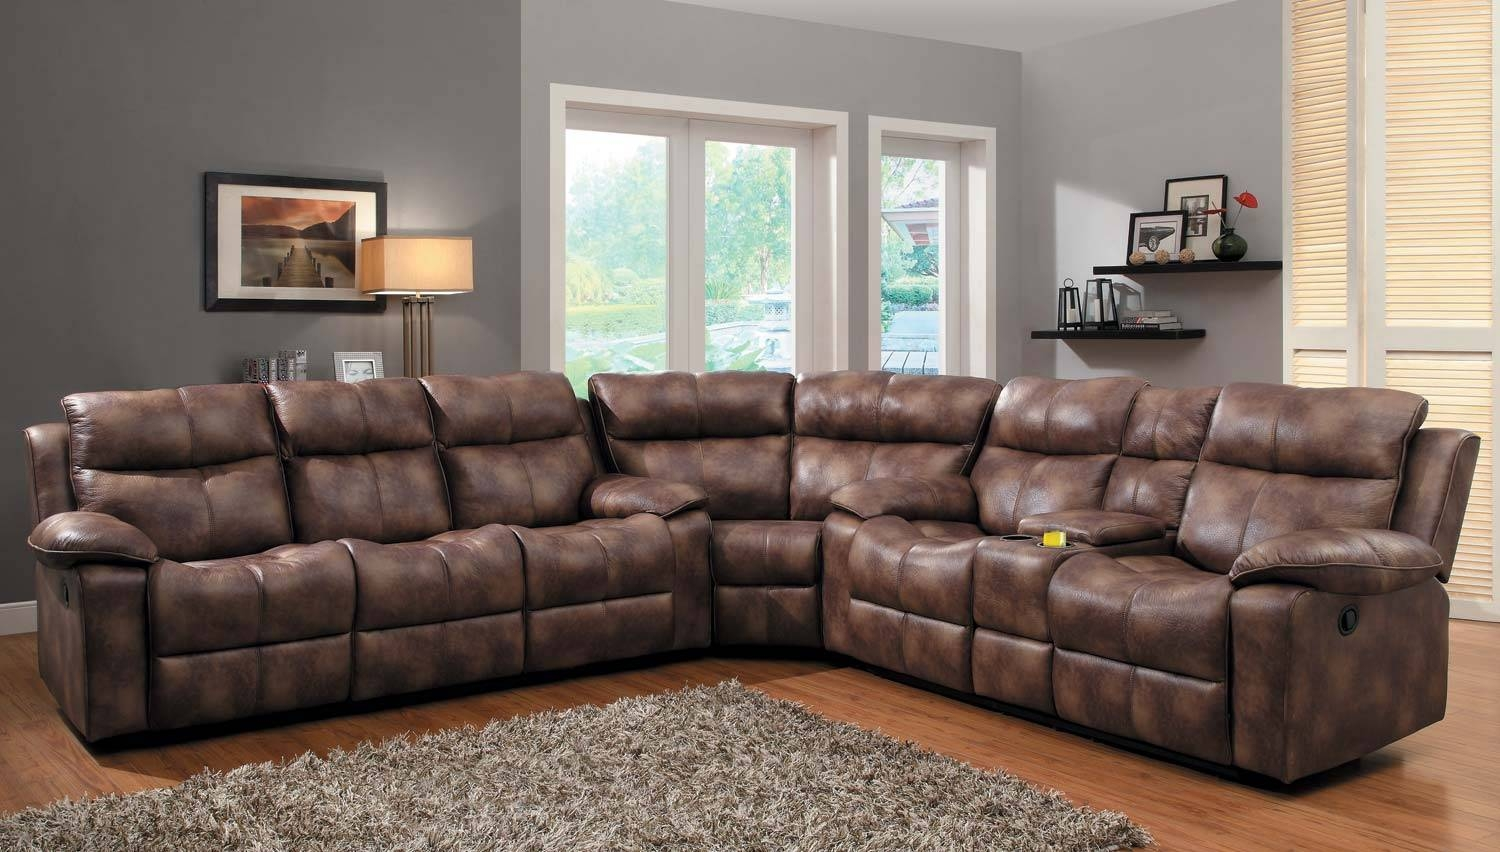 Furniture: Fantastic Sectional Couches With Recliners For Your inside Microsuede Sectional Sofas (Image 11 of 30)